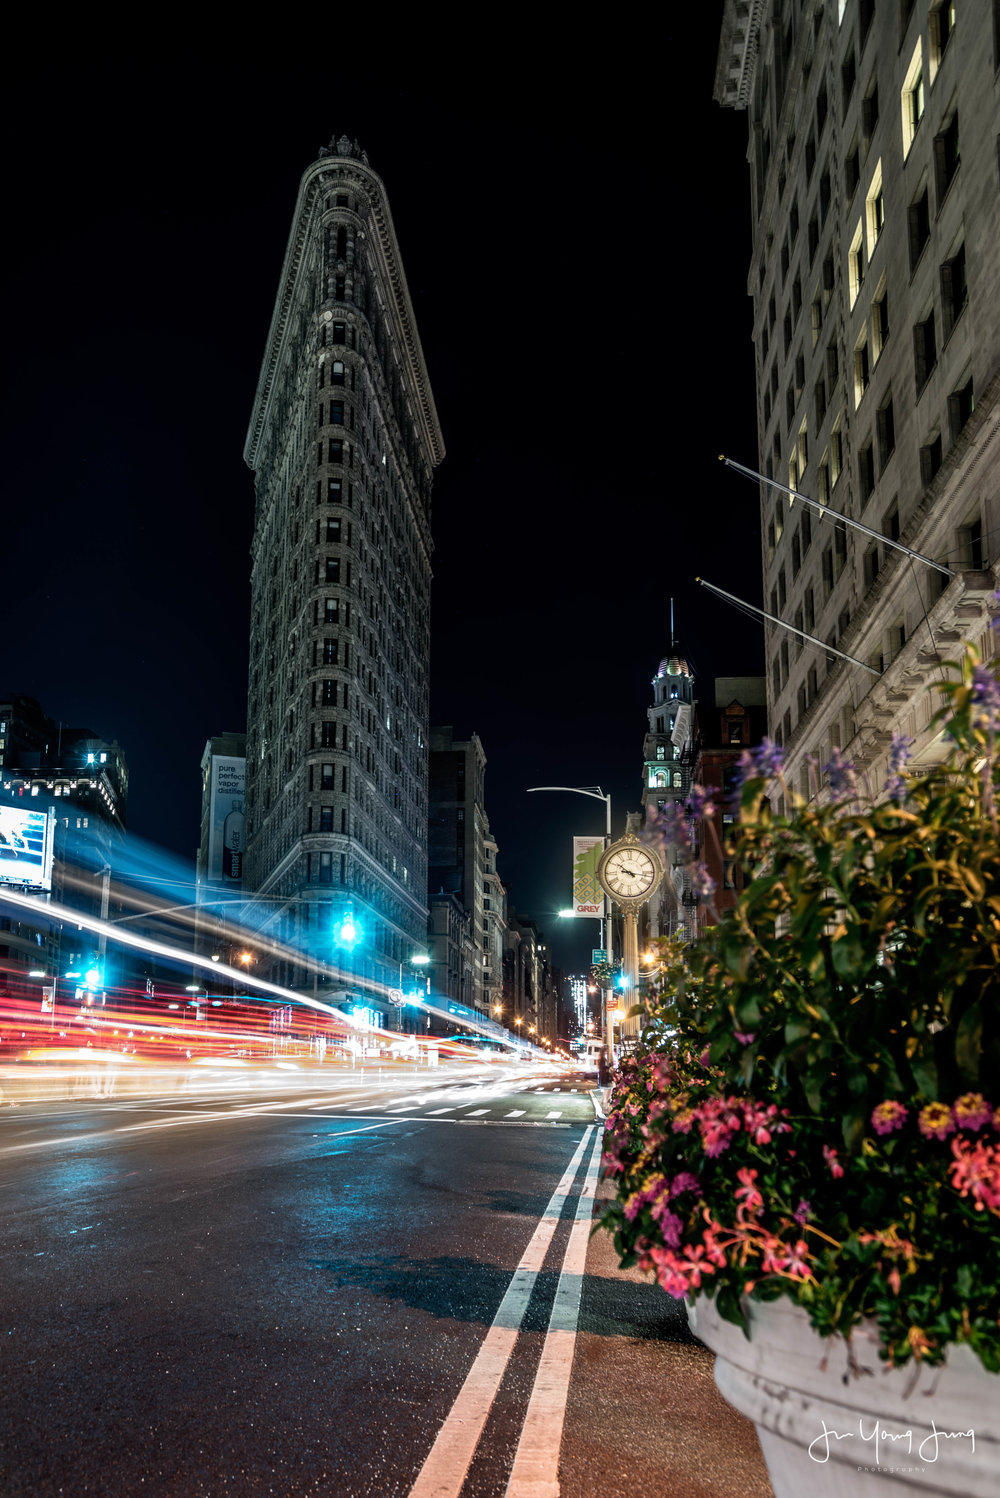 Late Night at Flatiron  - Purchase this photo through my print store!